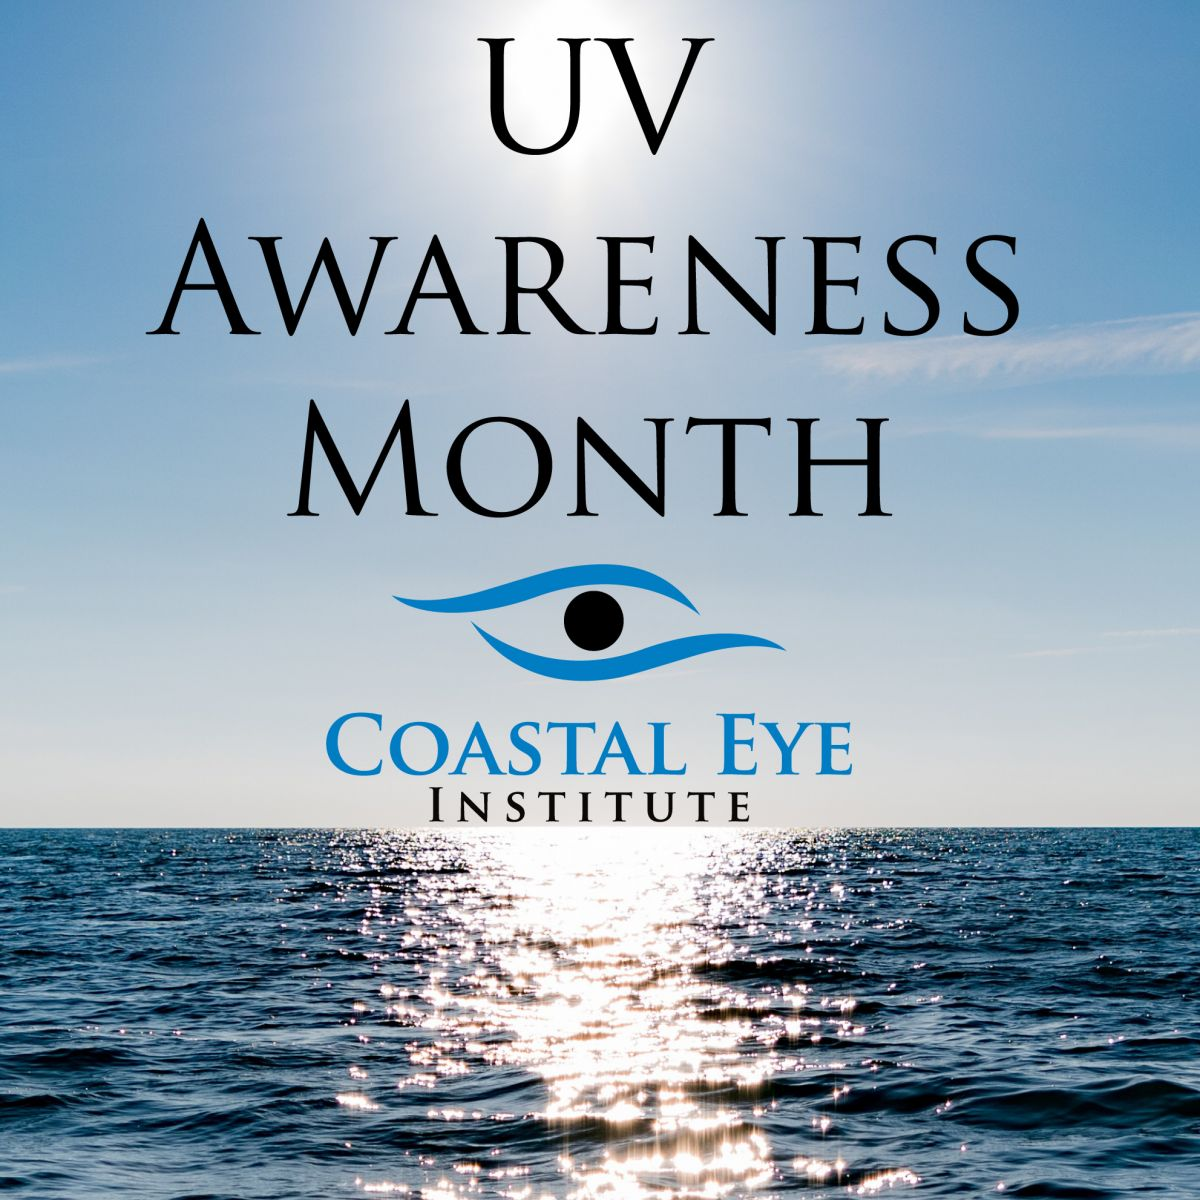 UV Awareness month image